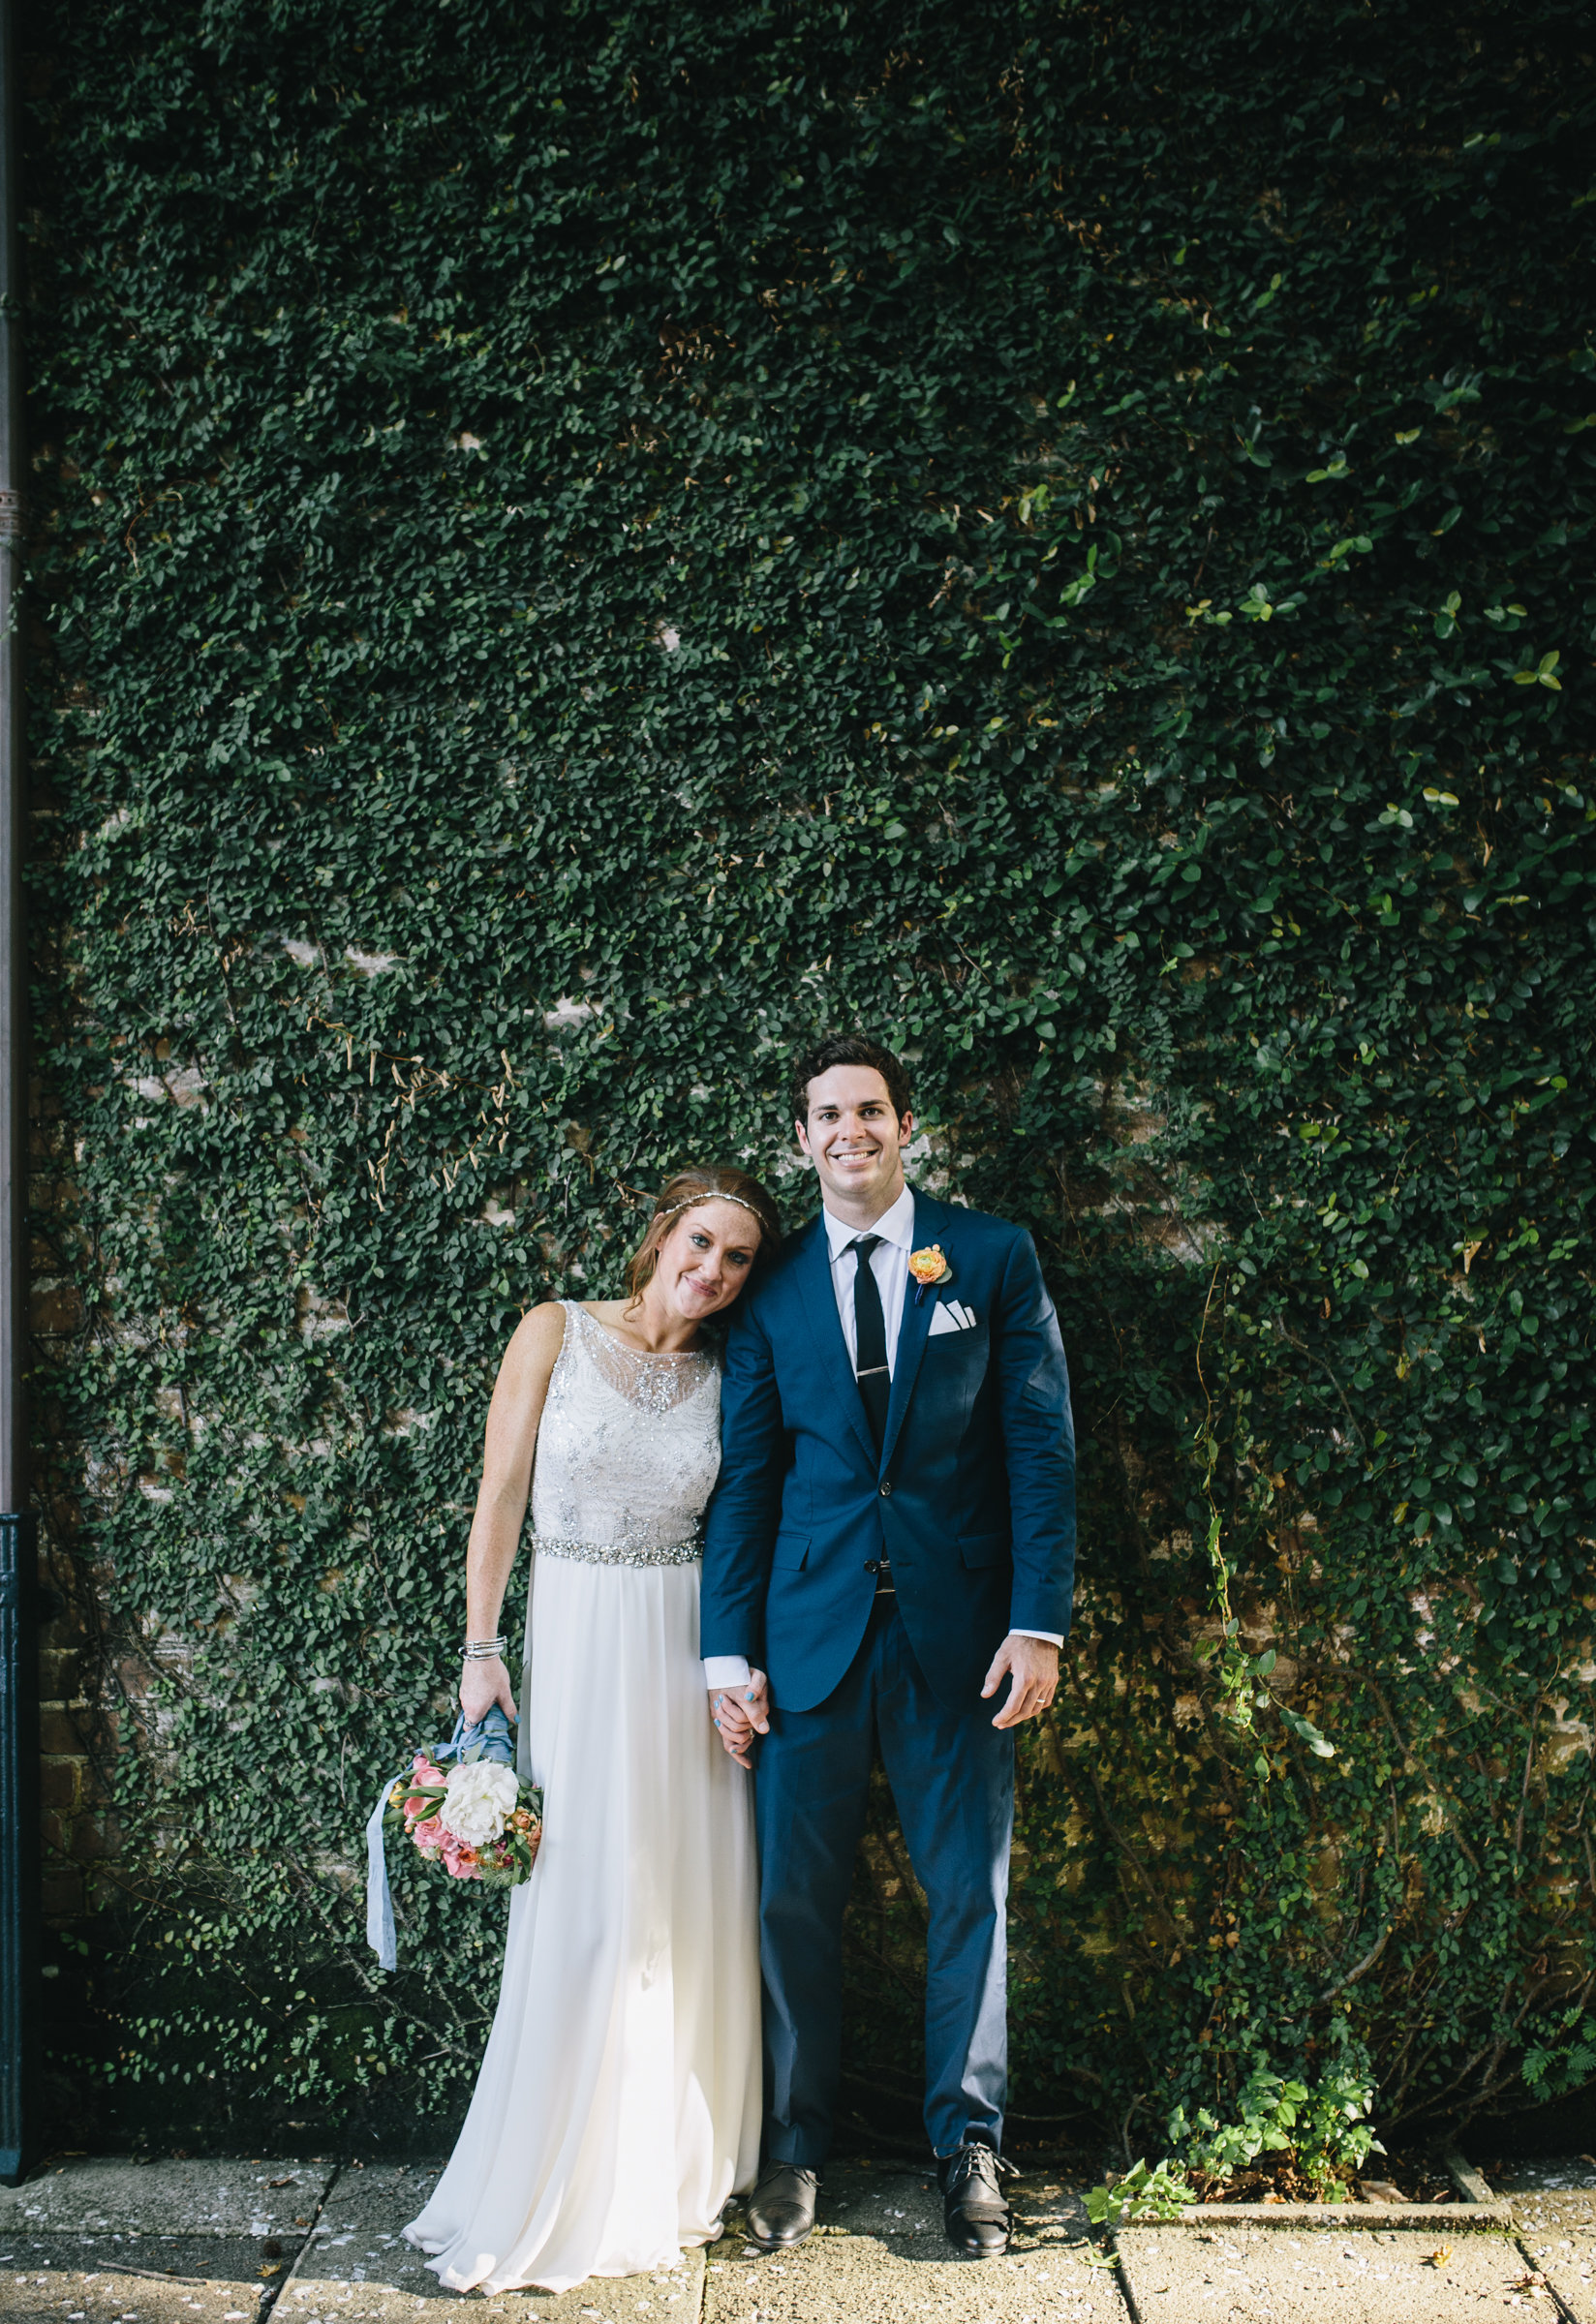 mackensey-alexander-photography-ivory-and-beau-bridal-boutique-from-this-day-forward-wedding-planning-sarah-seven-gwen-savannah-bridal-boutique-savannah-wedding-dresses-savannah-bridal-boutique-savannah-wedding-planner-savannah-weddings-50.jpg